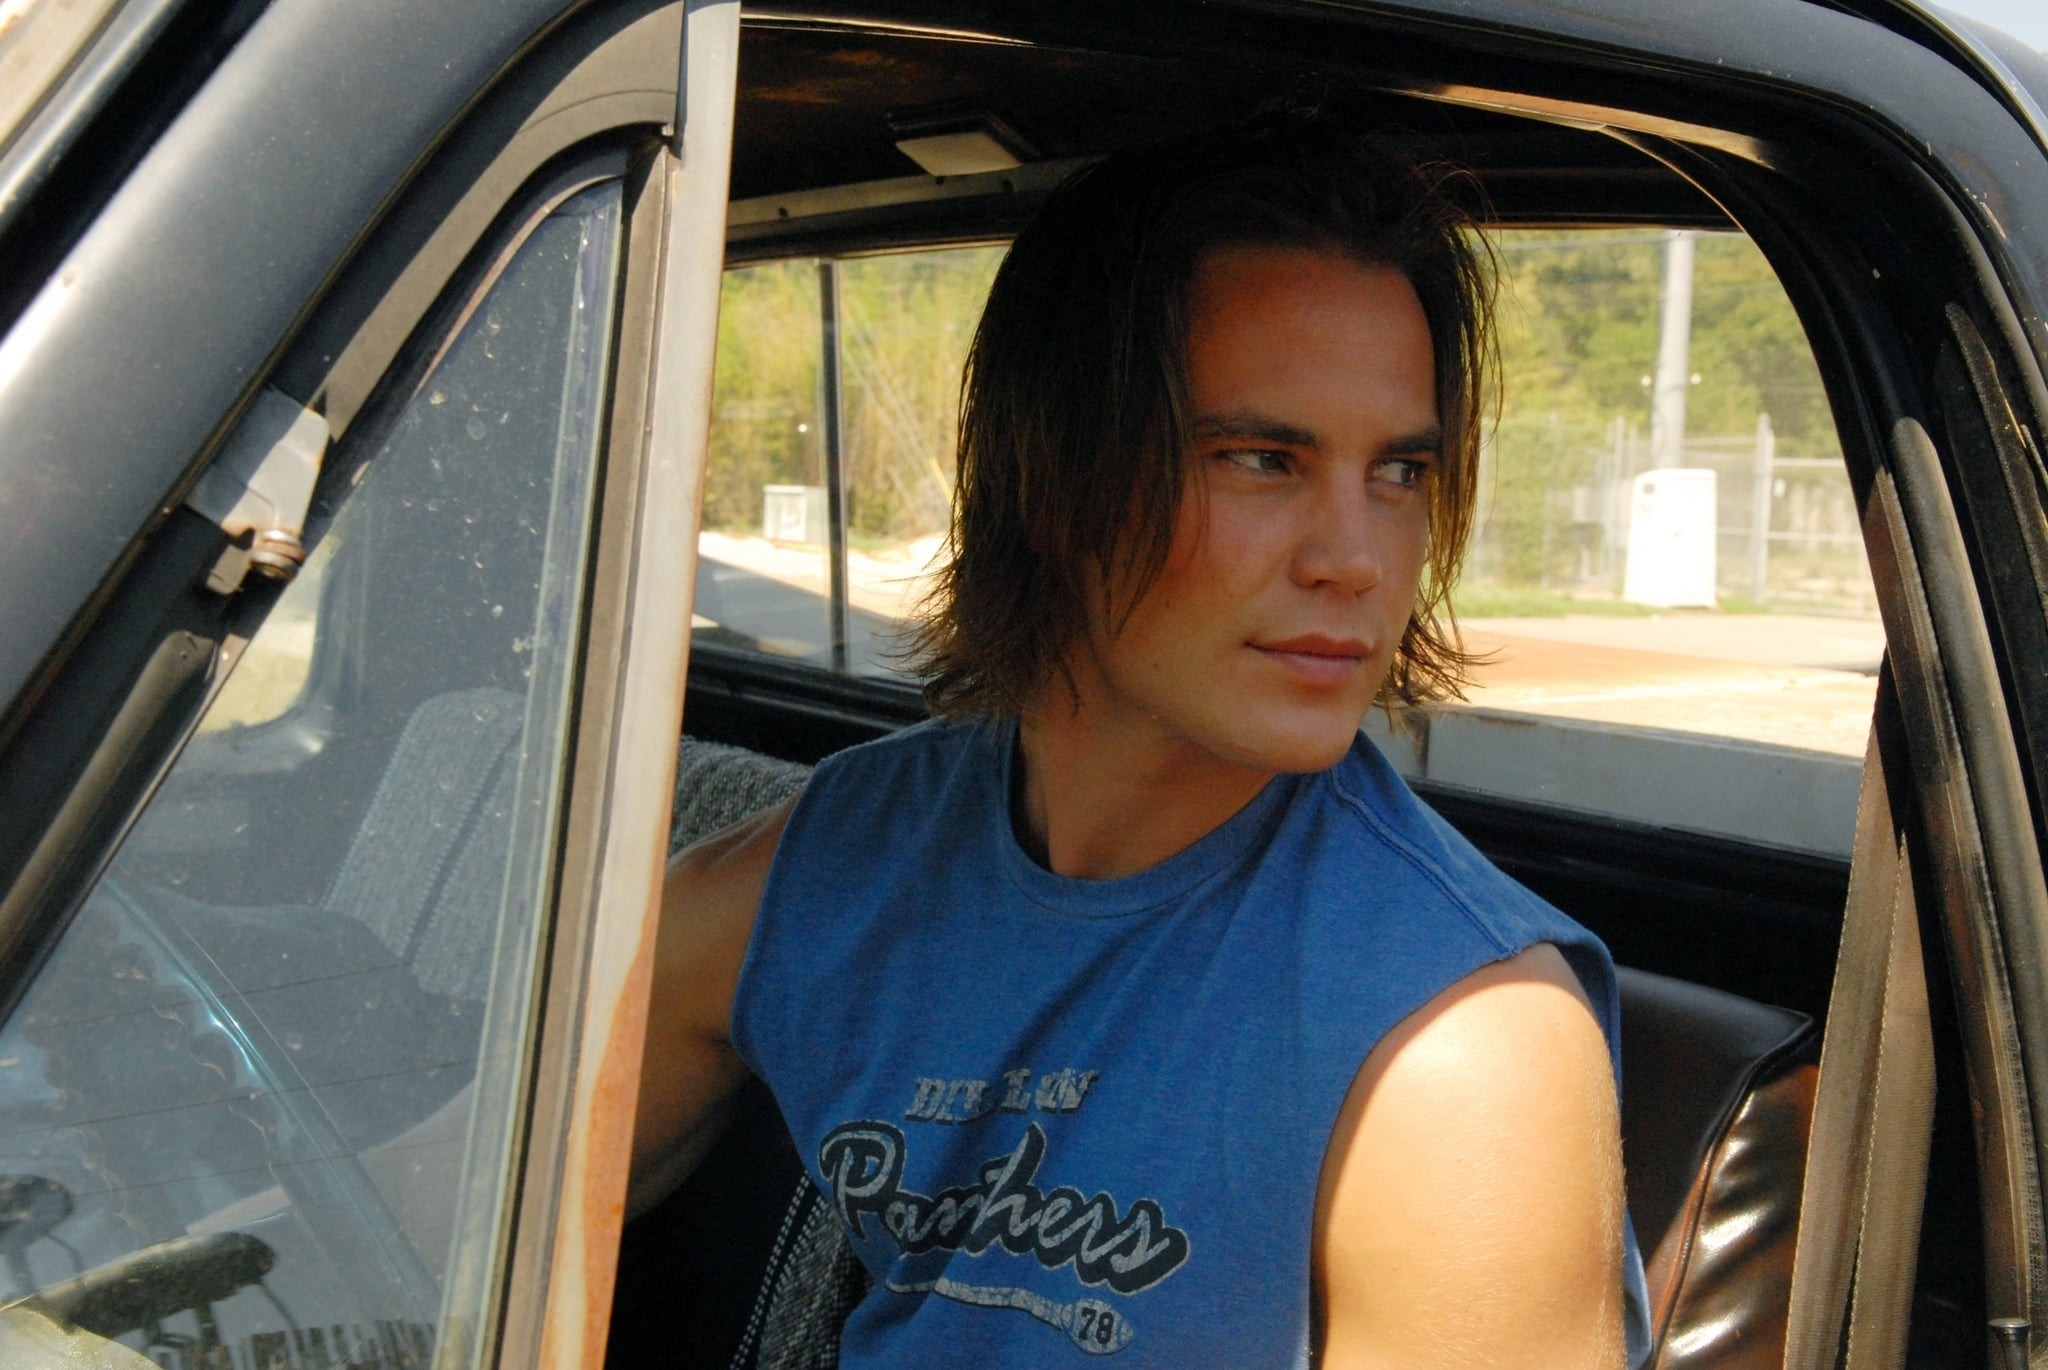 Swoon! Tim Riggins 4ever.